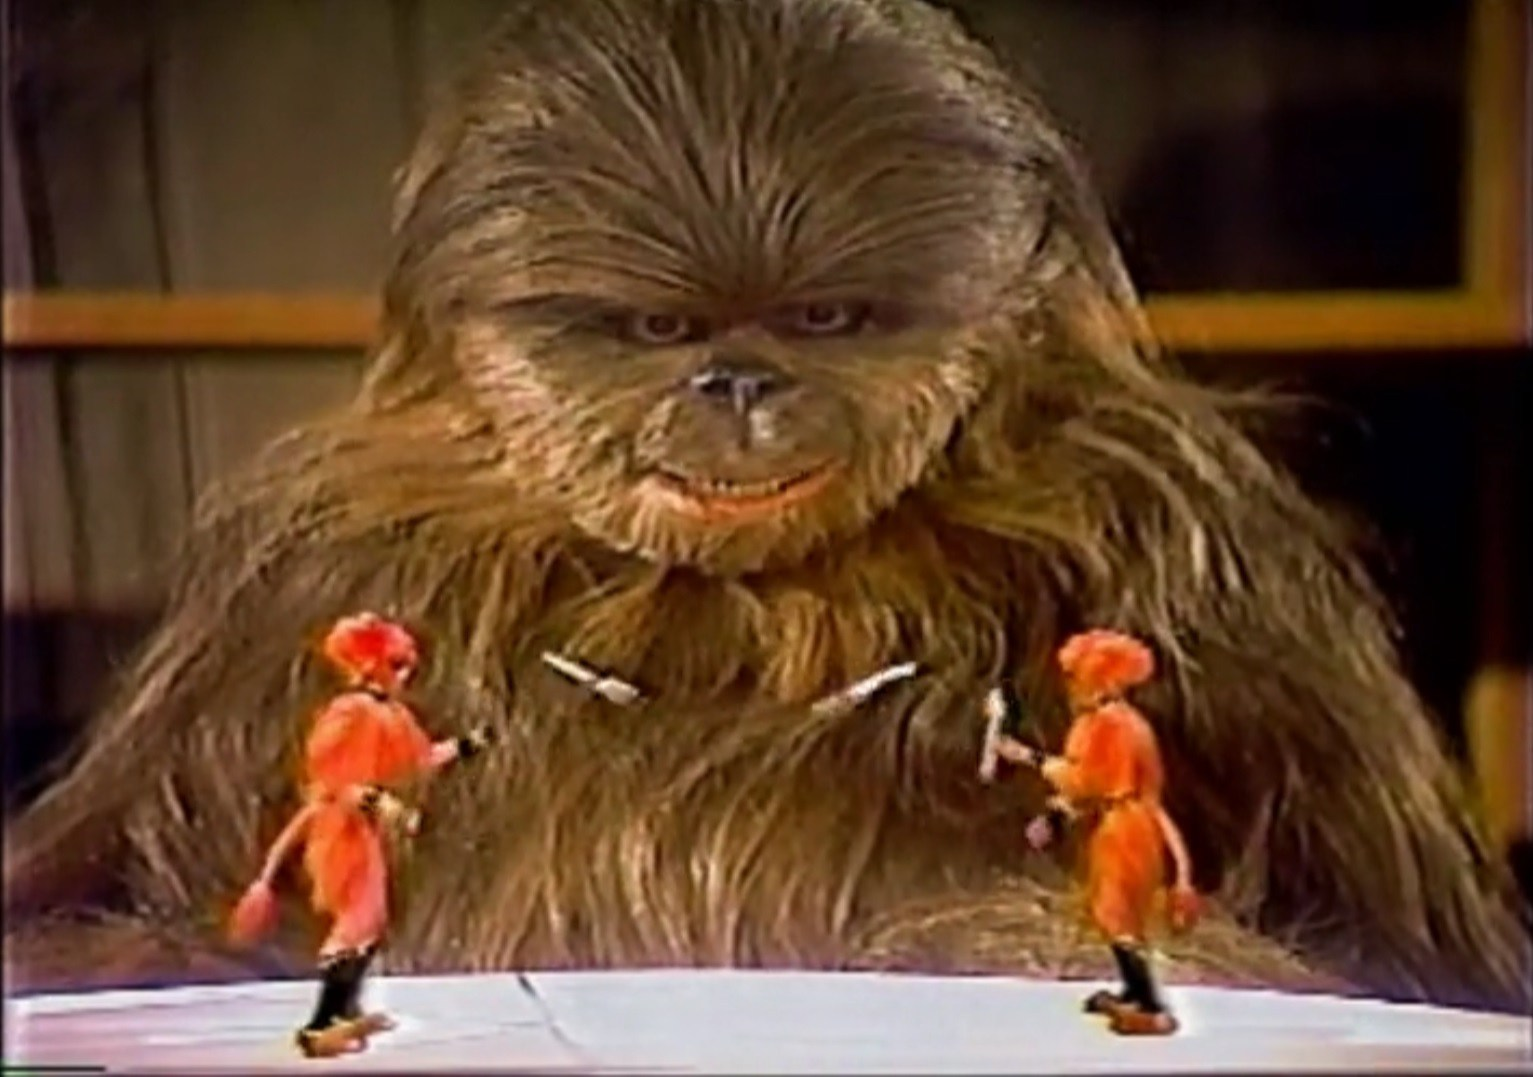 WTF: The Star Wars Holiday Special (1978) – 1,2,3 WTF!? (Watch the Film)